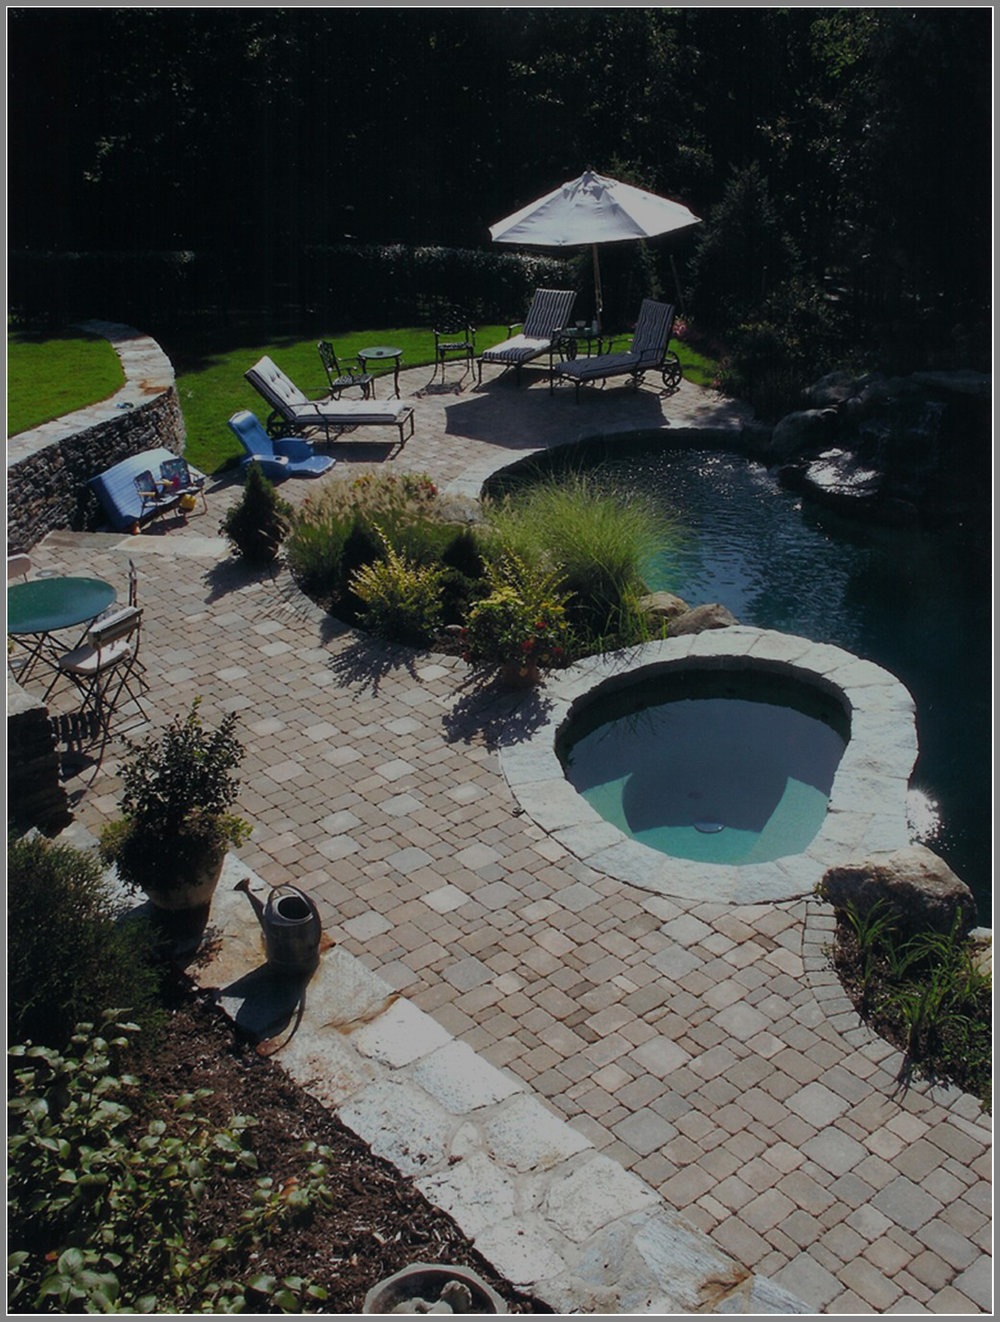 Concrete paver pool deck by Artistic outdoors